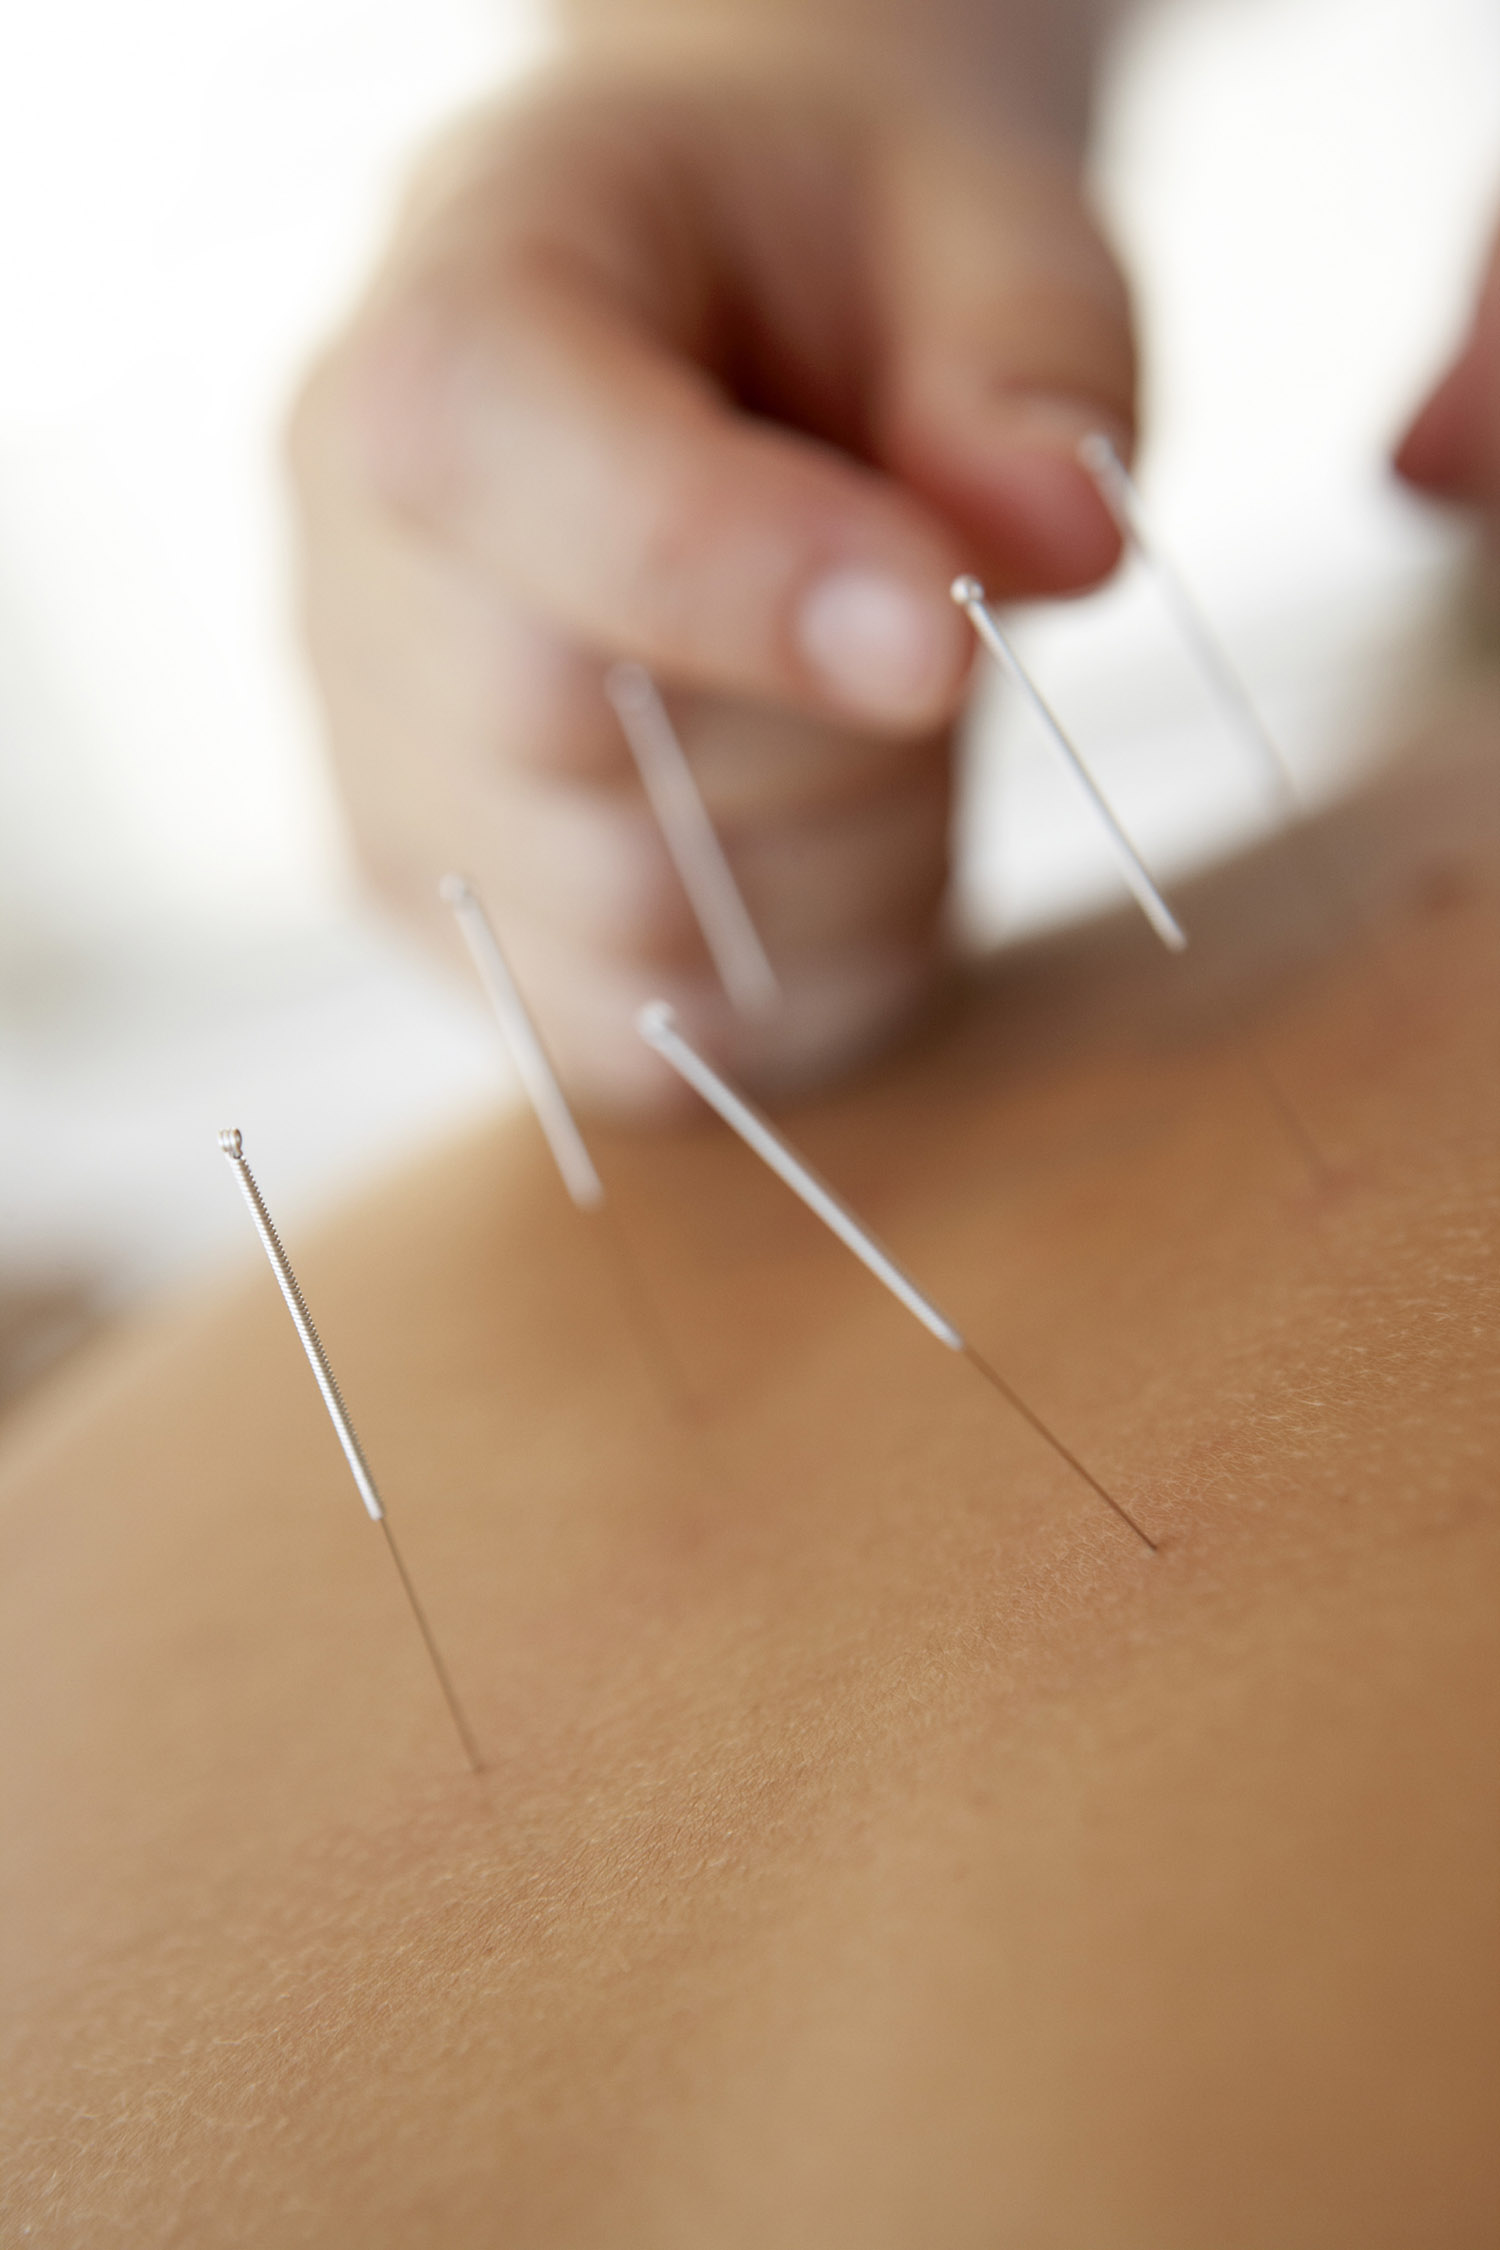 Acupuncture in Stockport, Cheshire